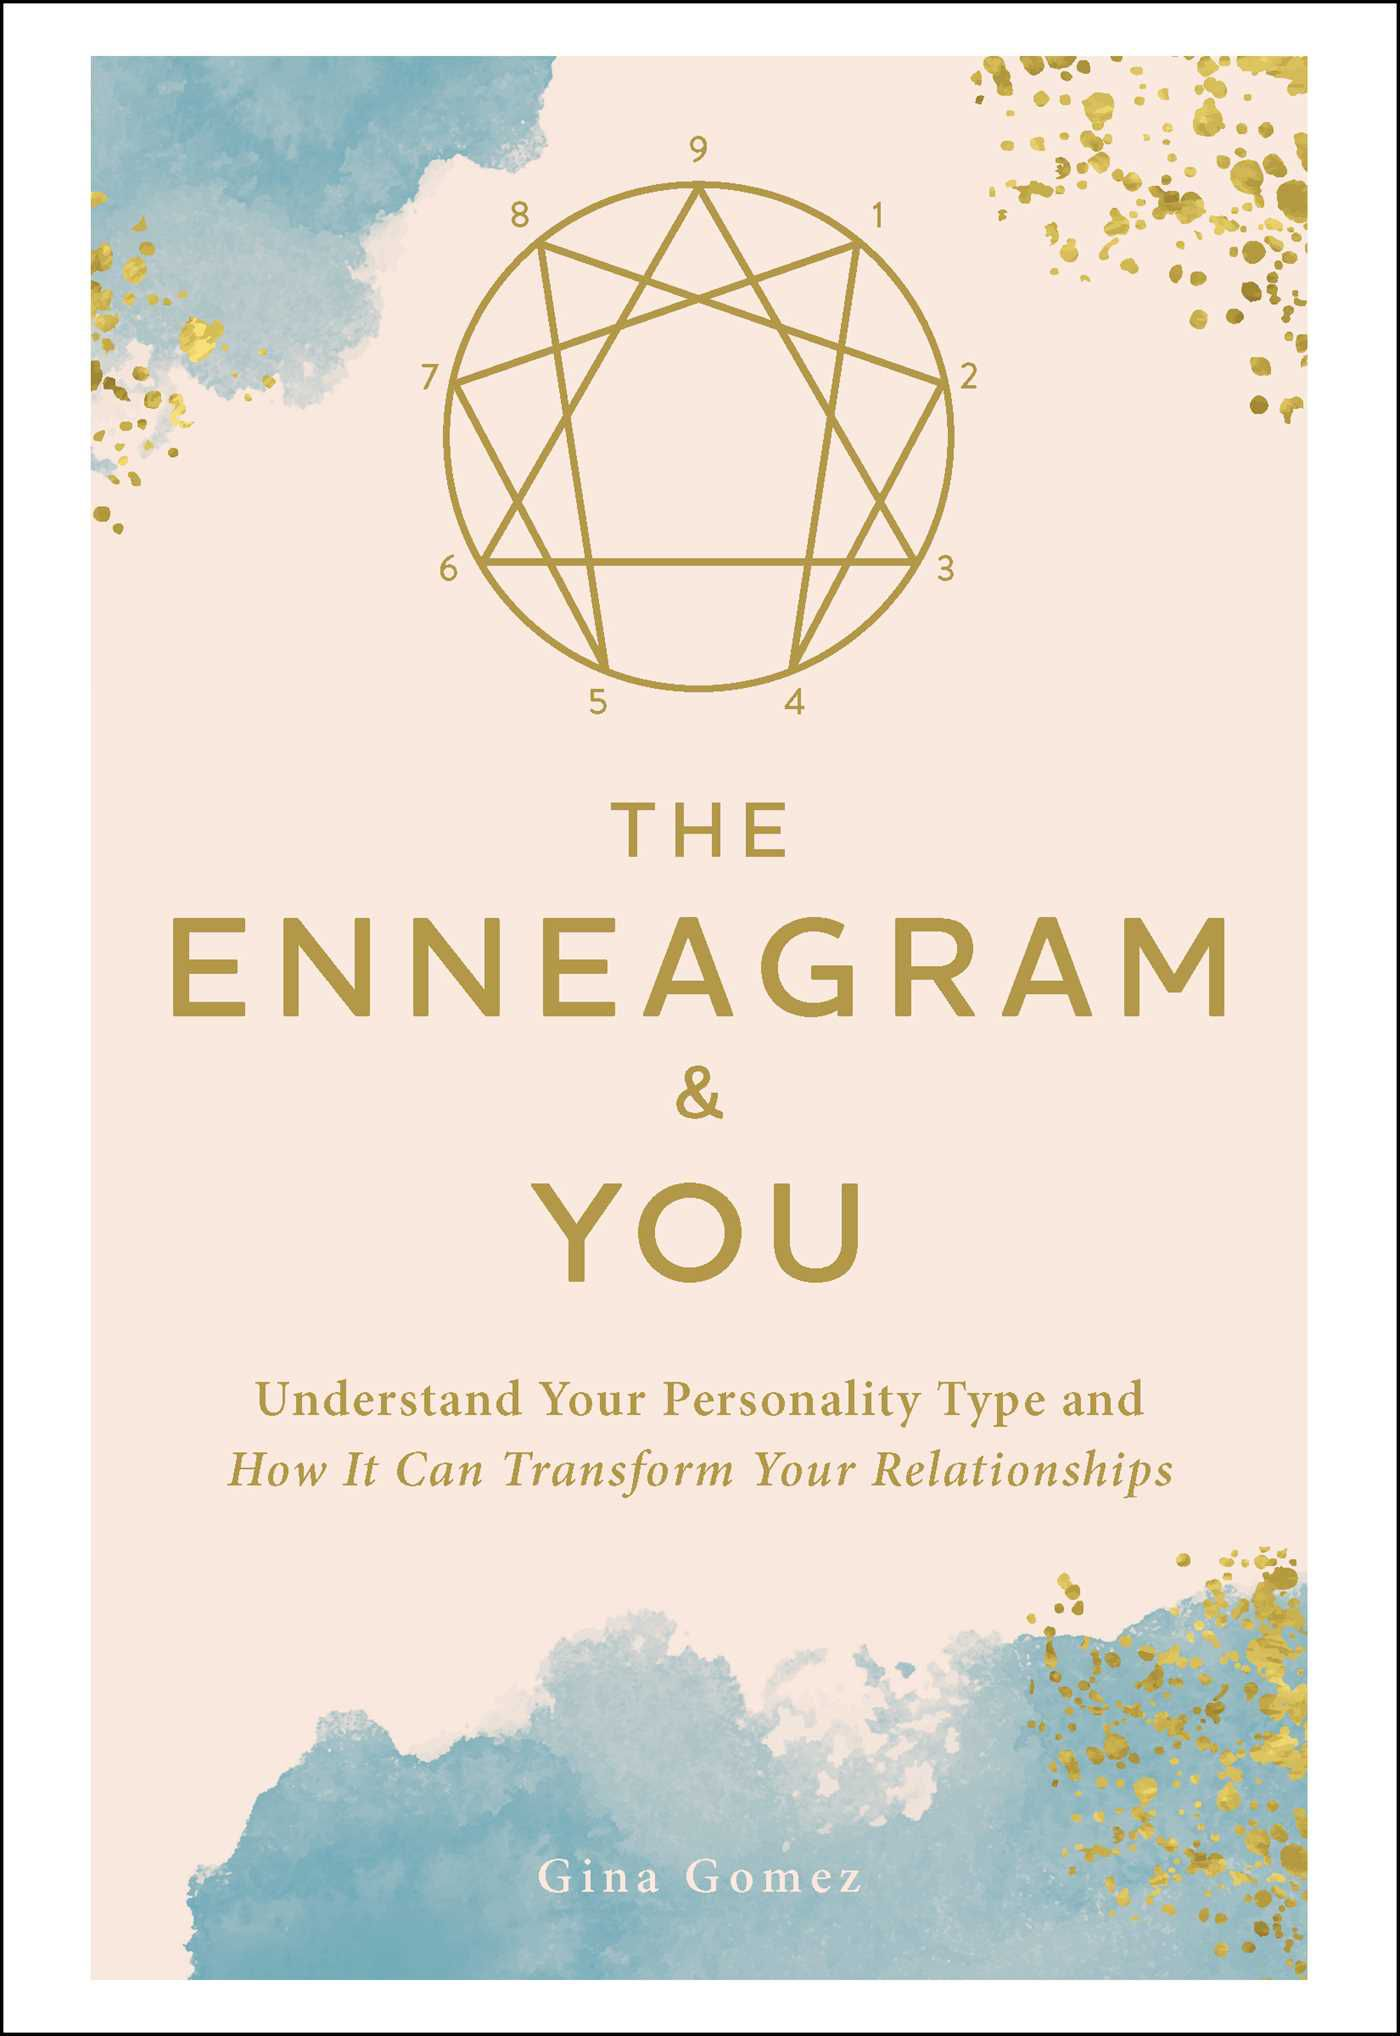 The Enneagram and You by Gina Gomez